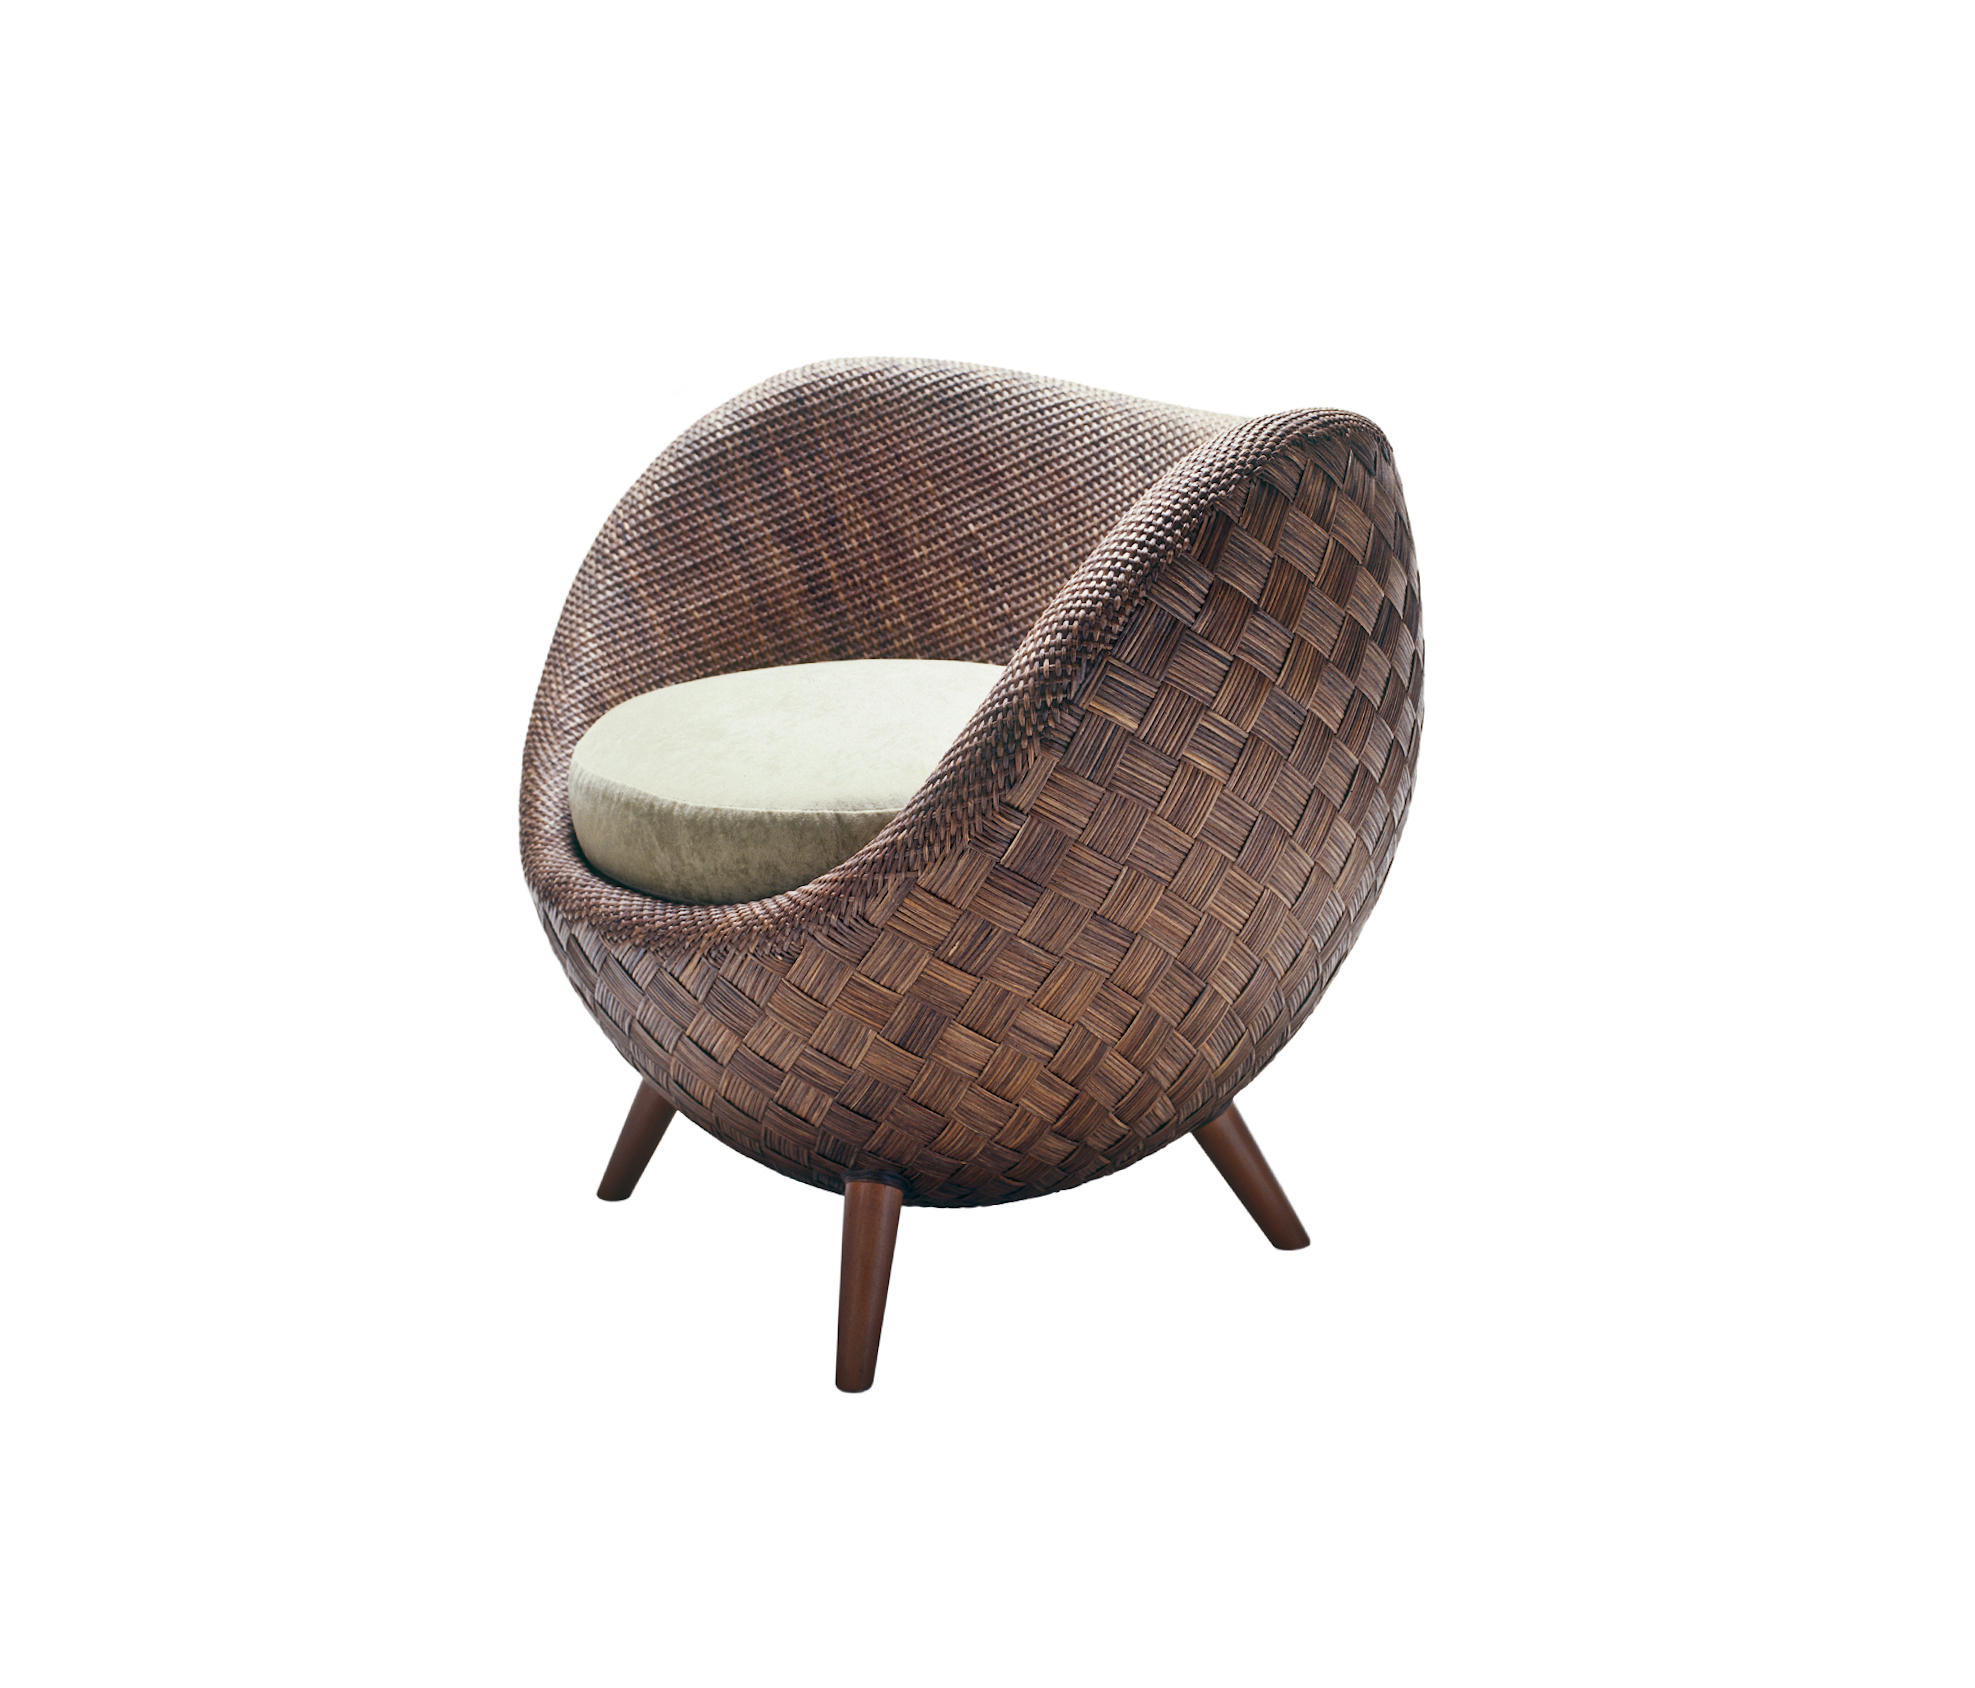 kenneth cobonpue furniture. la luna easy armchair by kenneth cobonpue lounge chairs furniture u